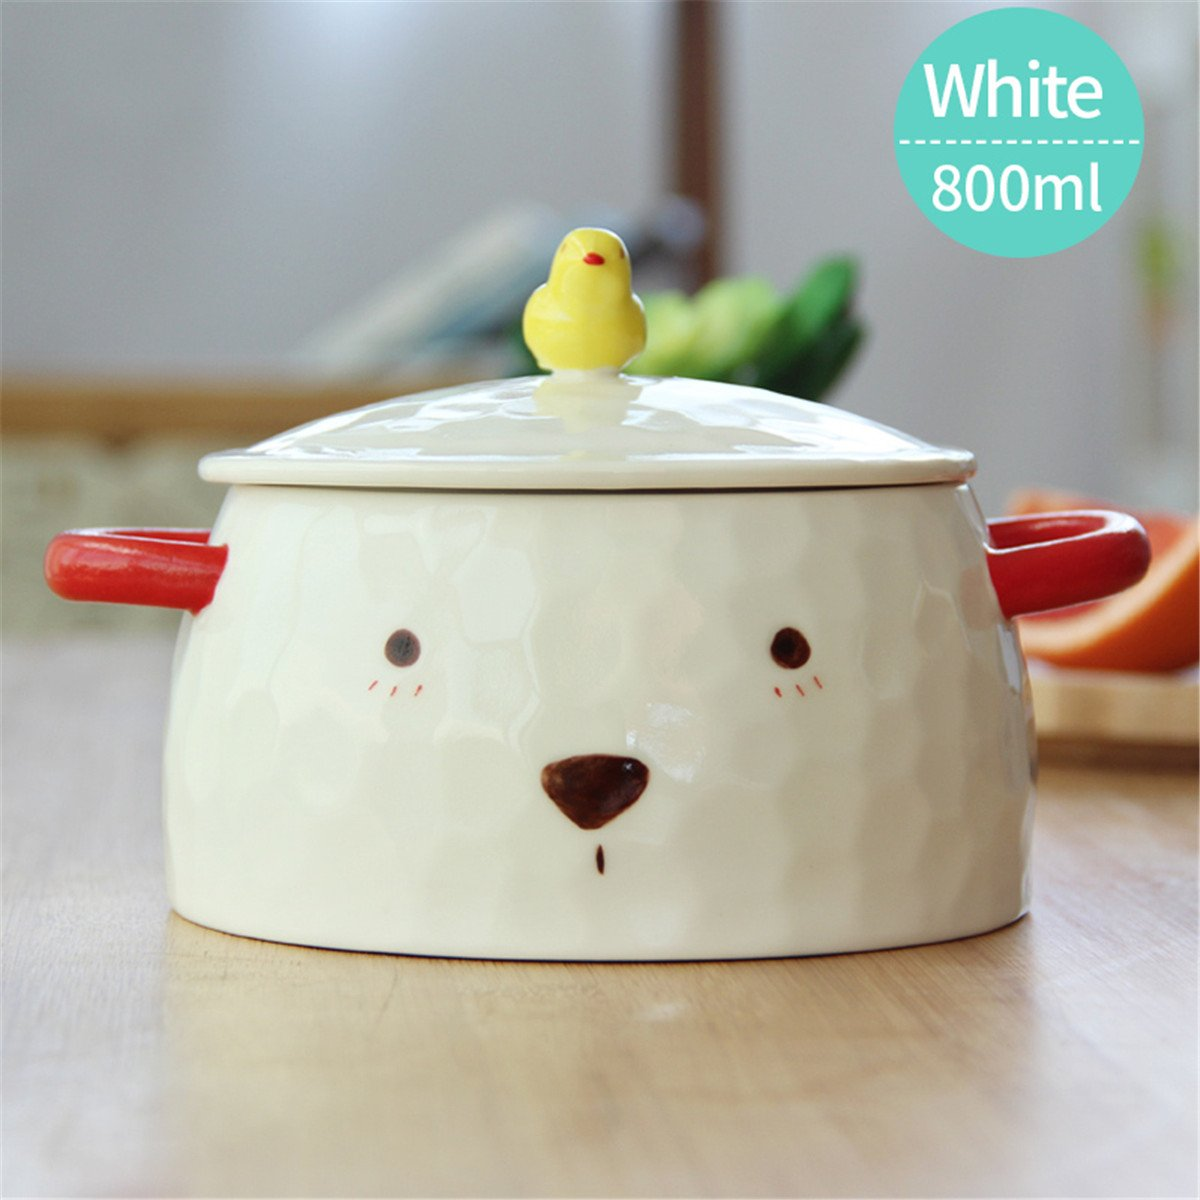 UPSTYLE Big Capacity 3D Cute Cartoon Microwave Ceramic Soup Bowls Bear Instant Noodle Bowl Cereal Bowl for Salad Fruit Vegetable with bird Lid and Handle Size 27.3oz(800 ml) (White)